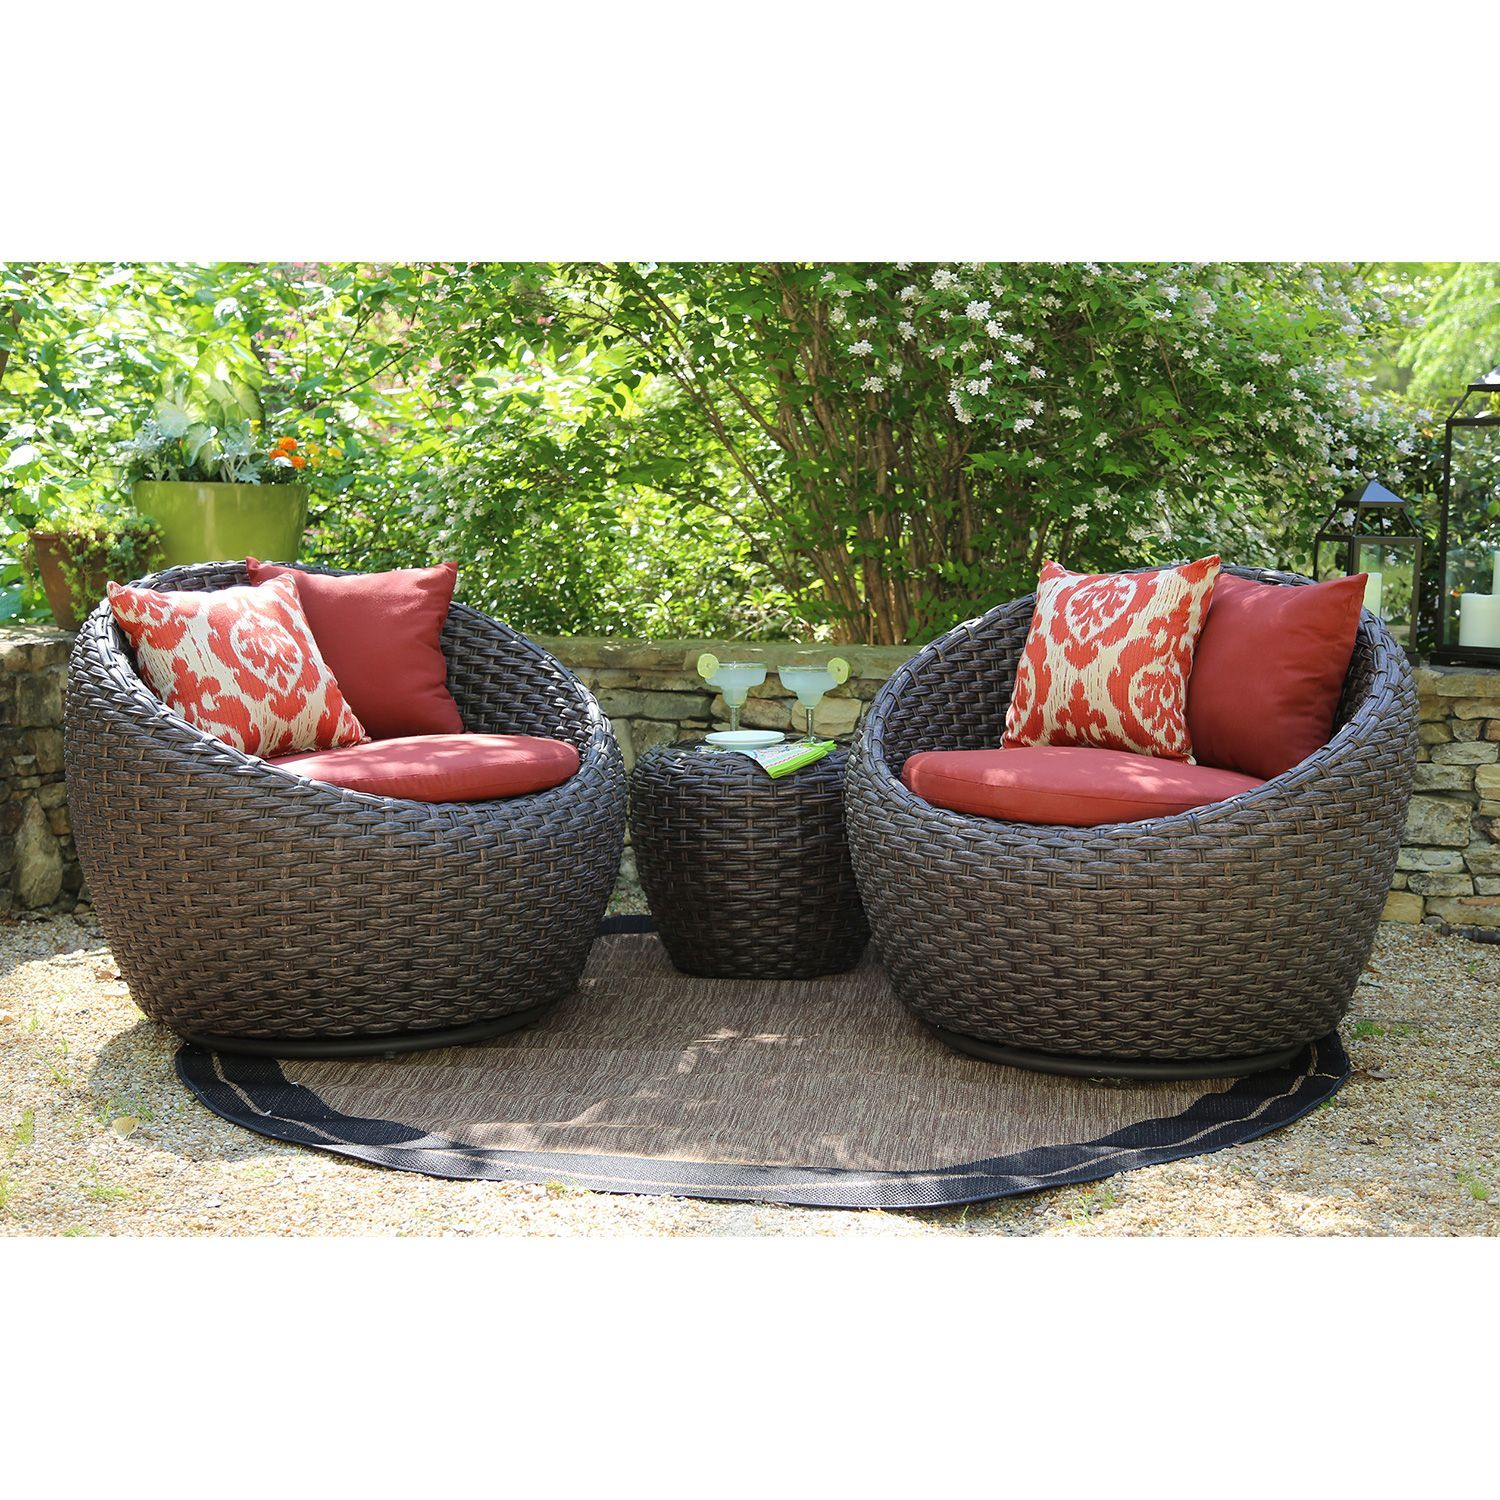 Corona 3 Pc Deep Seating Set With Premium Sunbrella